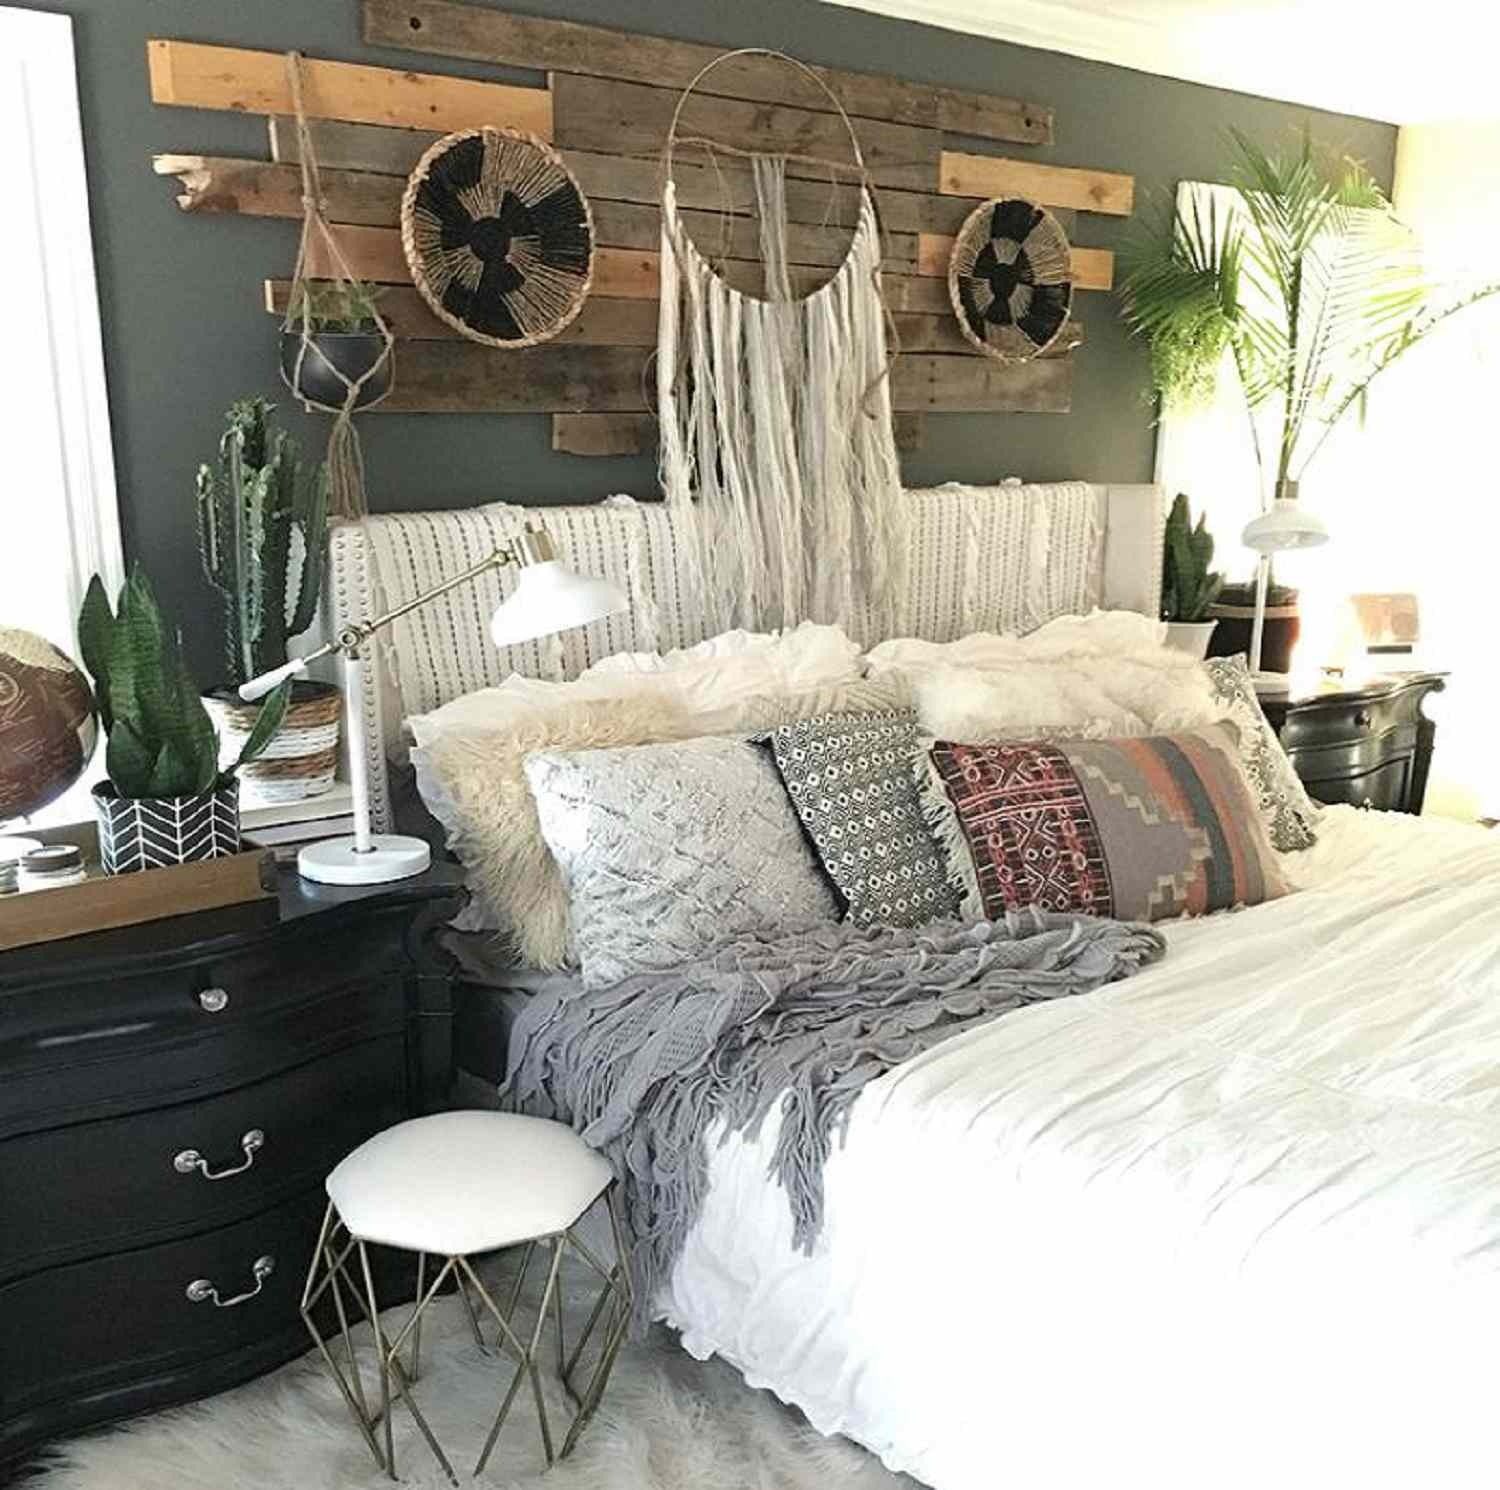 Eclectic neutral bedroom with bed, pillows, and wooden headboard.